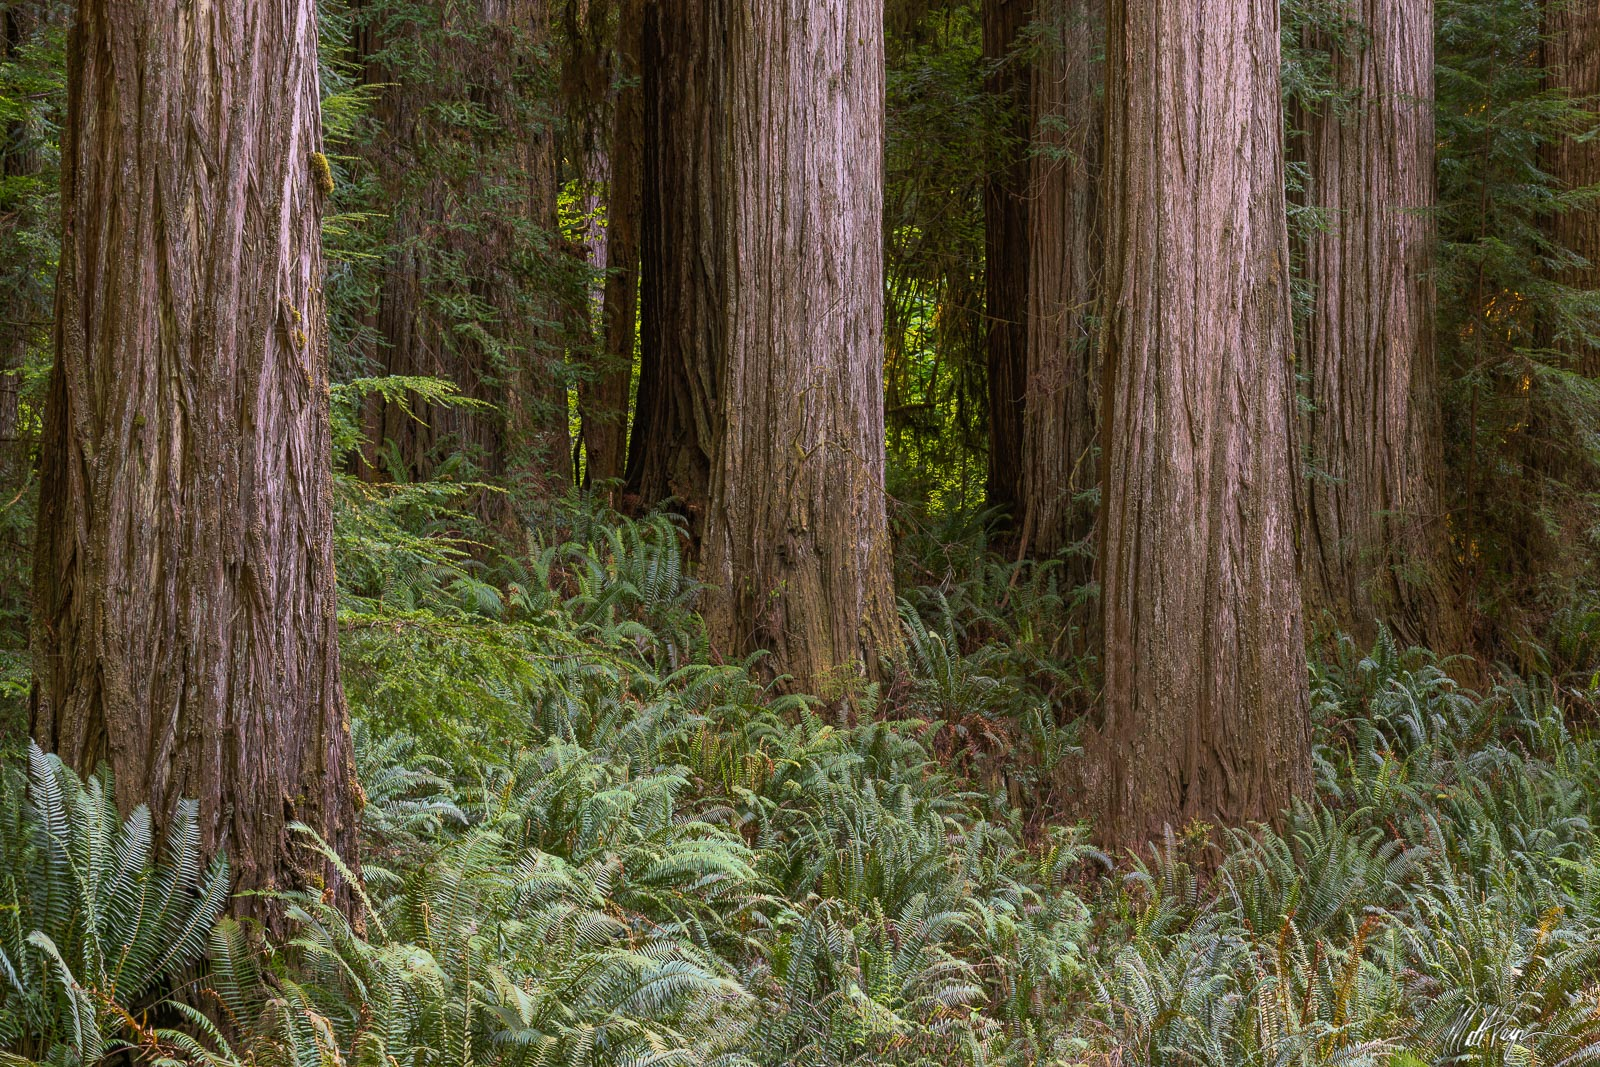 It may seem easy enough, but finding and composing a forest scene this simplistic and lacking in chaos in the Redwoods of California...